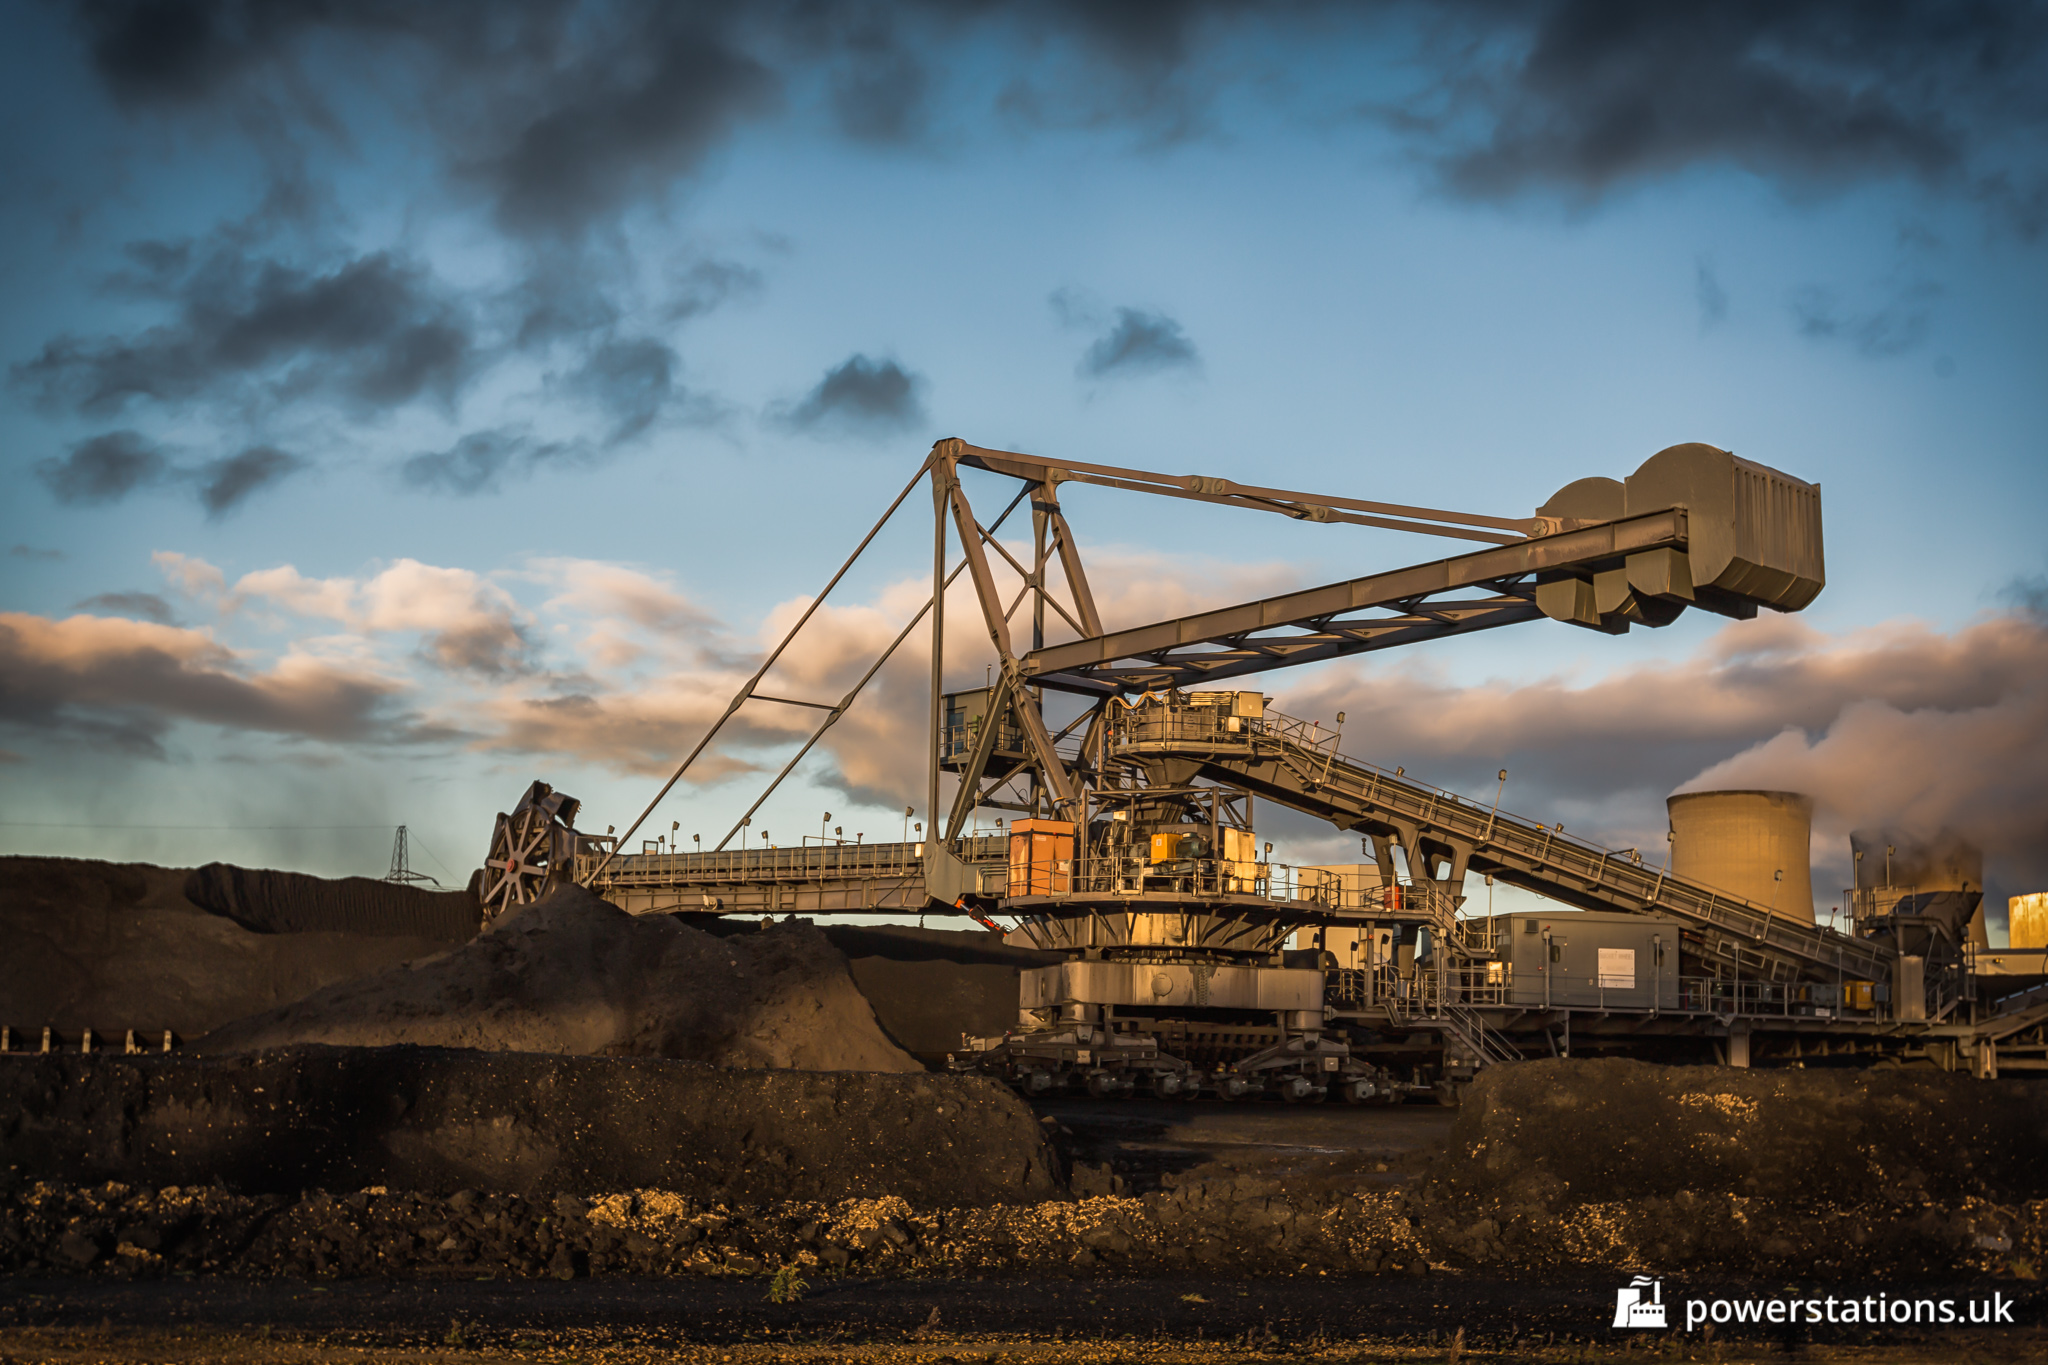 Drax Power Station – Coal and Biomass Handling – Power Stations of